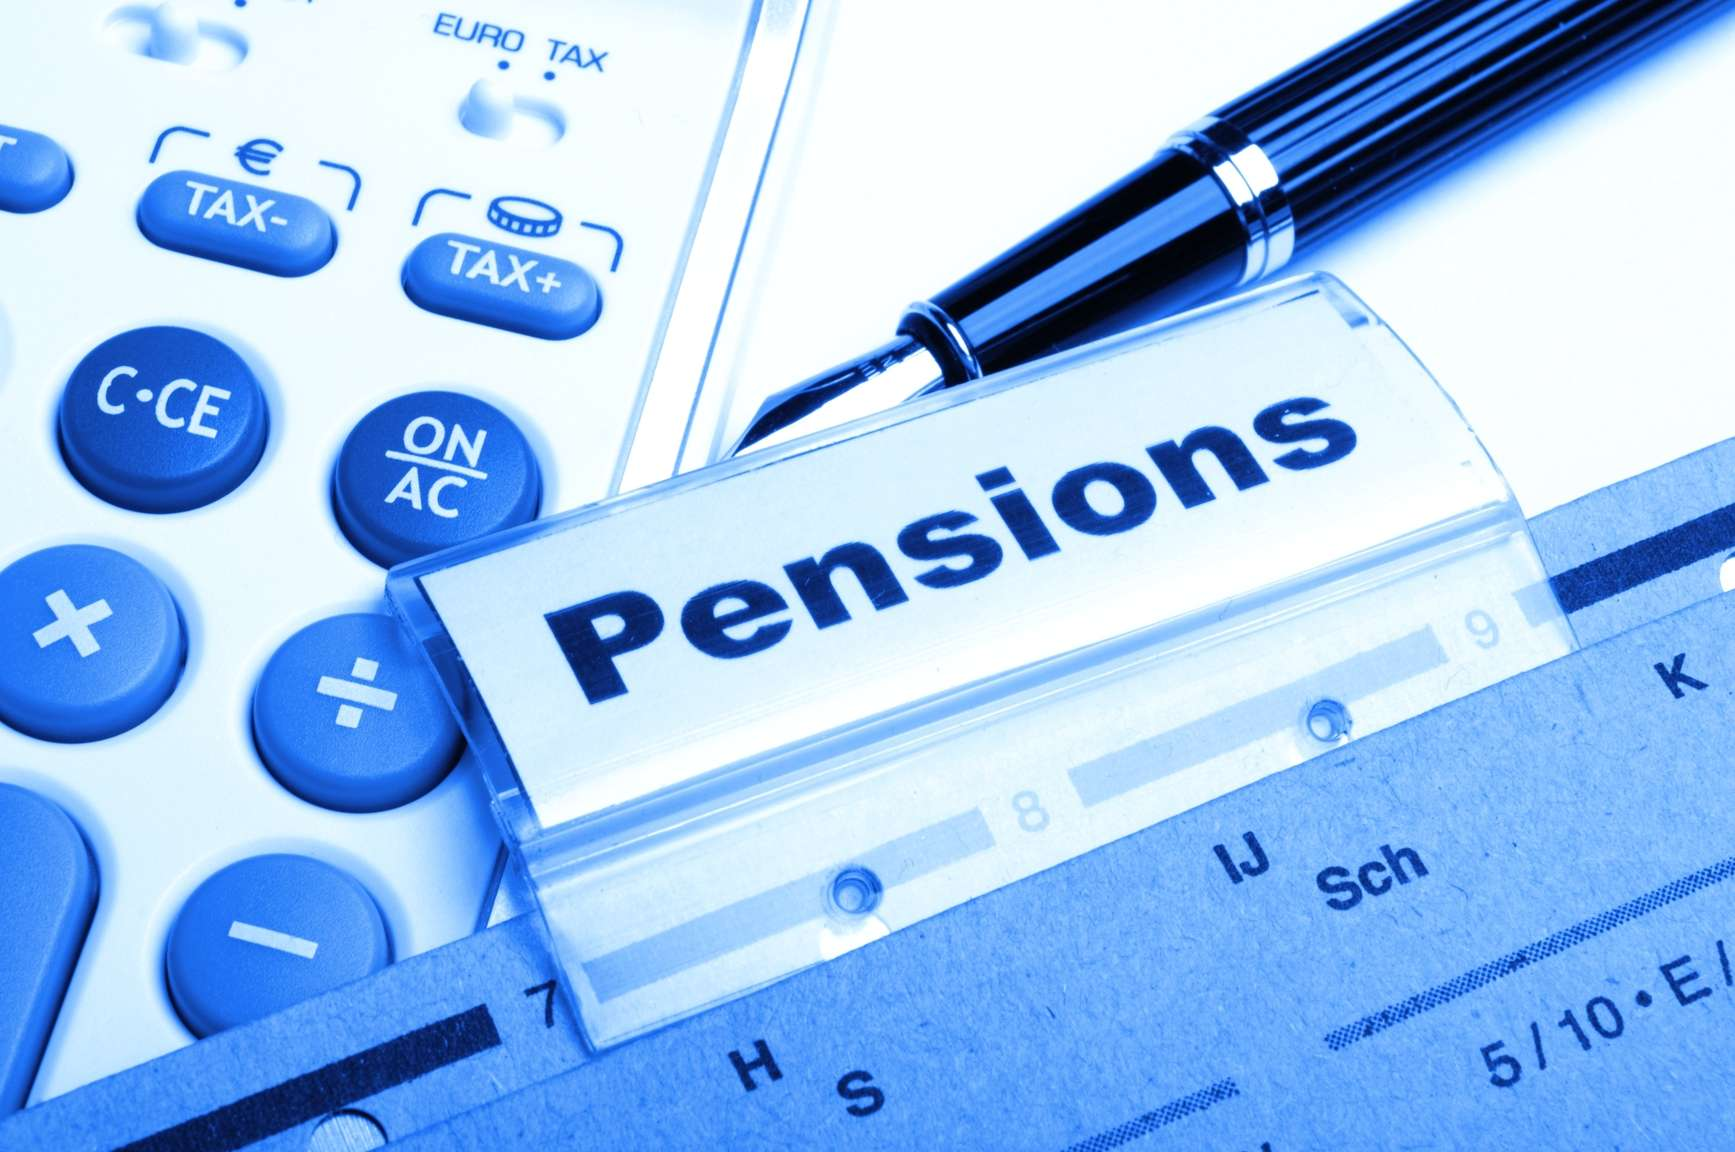 Phillips Urges Timely Establishment of Independent Pension Scheme